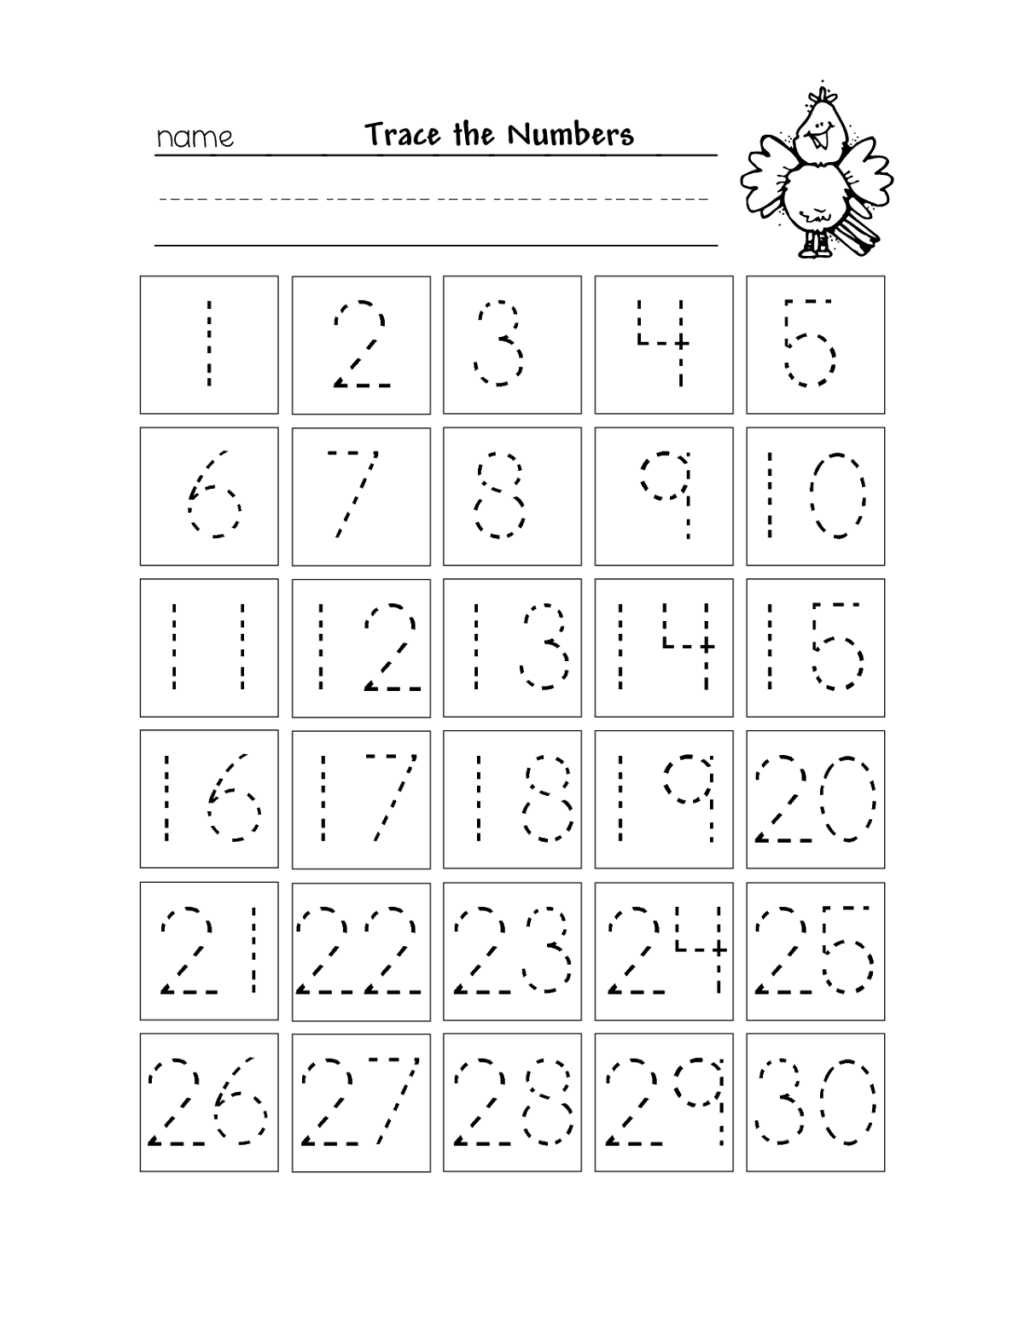 Create Your Own Tracing Worksheets